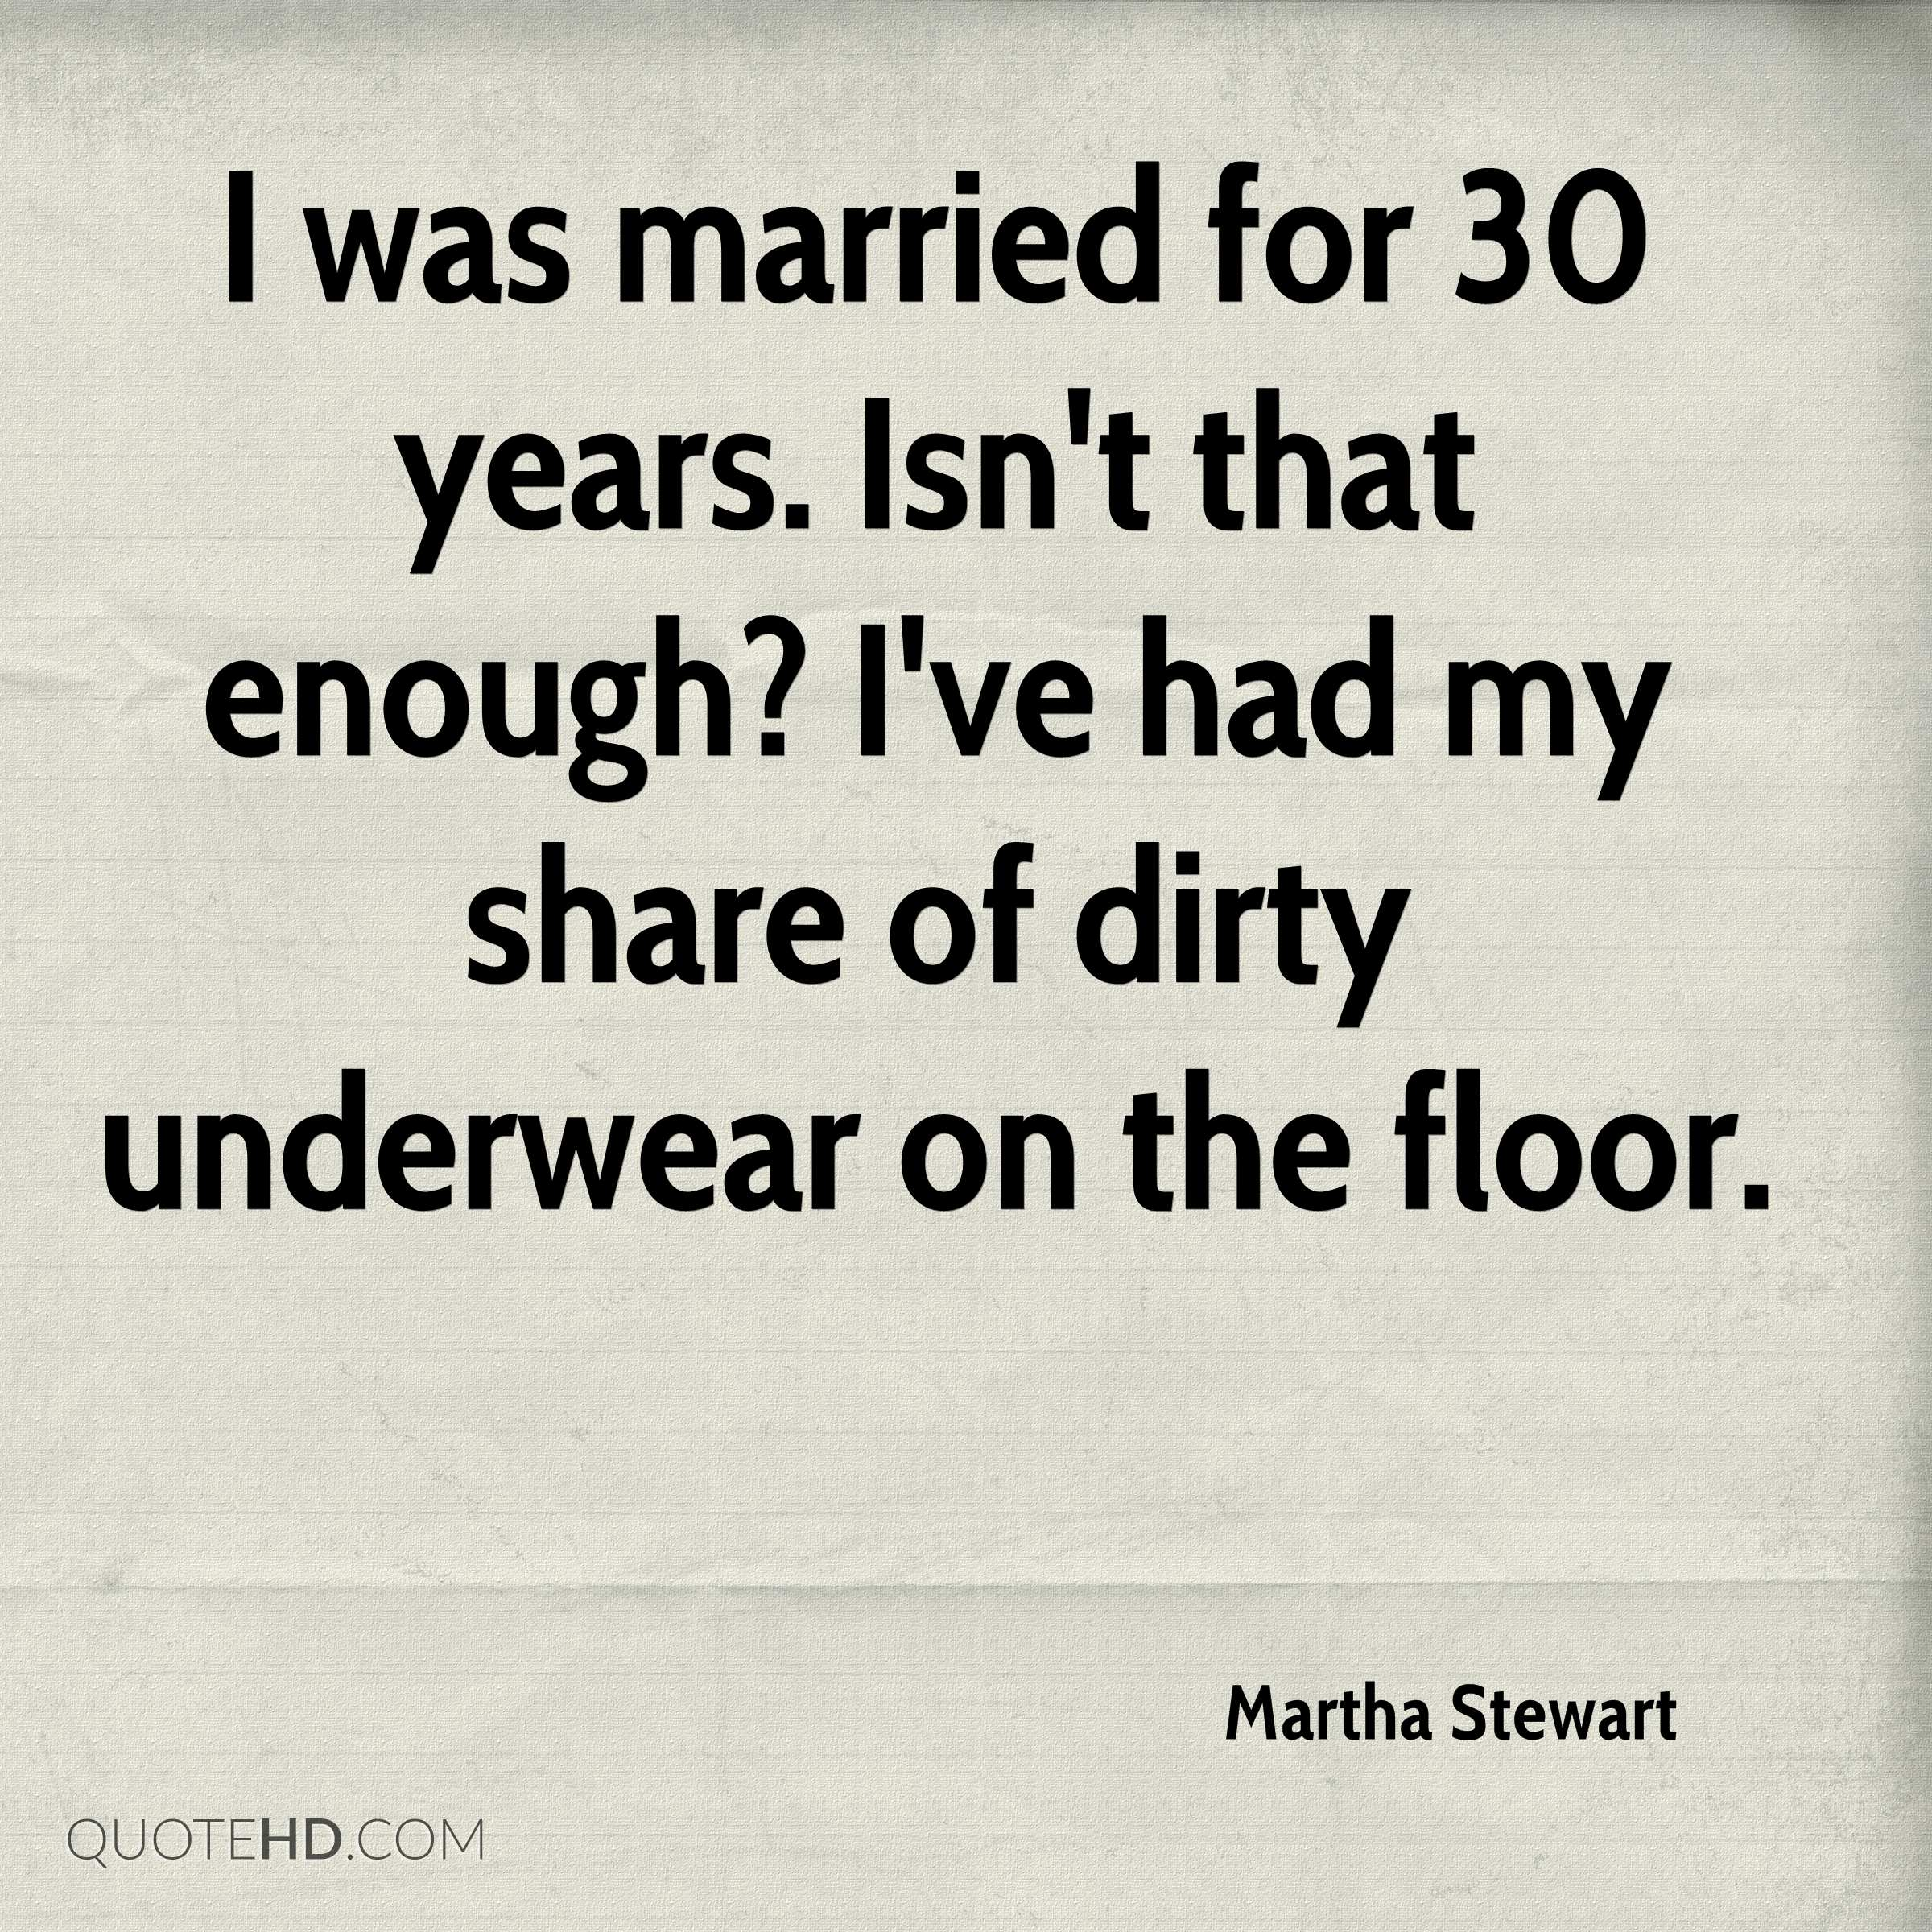 Martha Stewart Marriage Quotes | QuoteHD